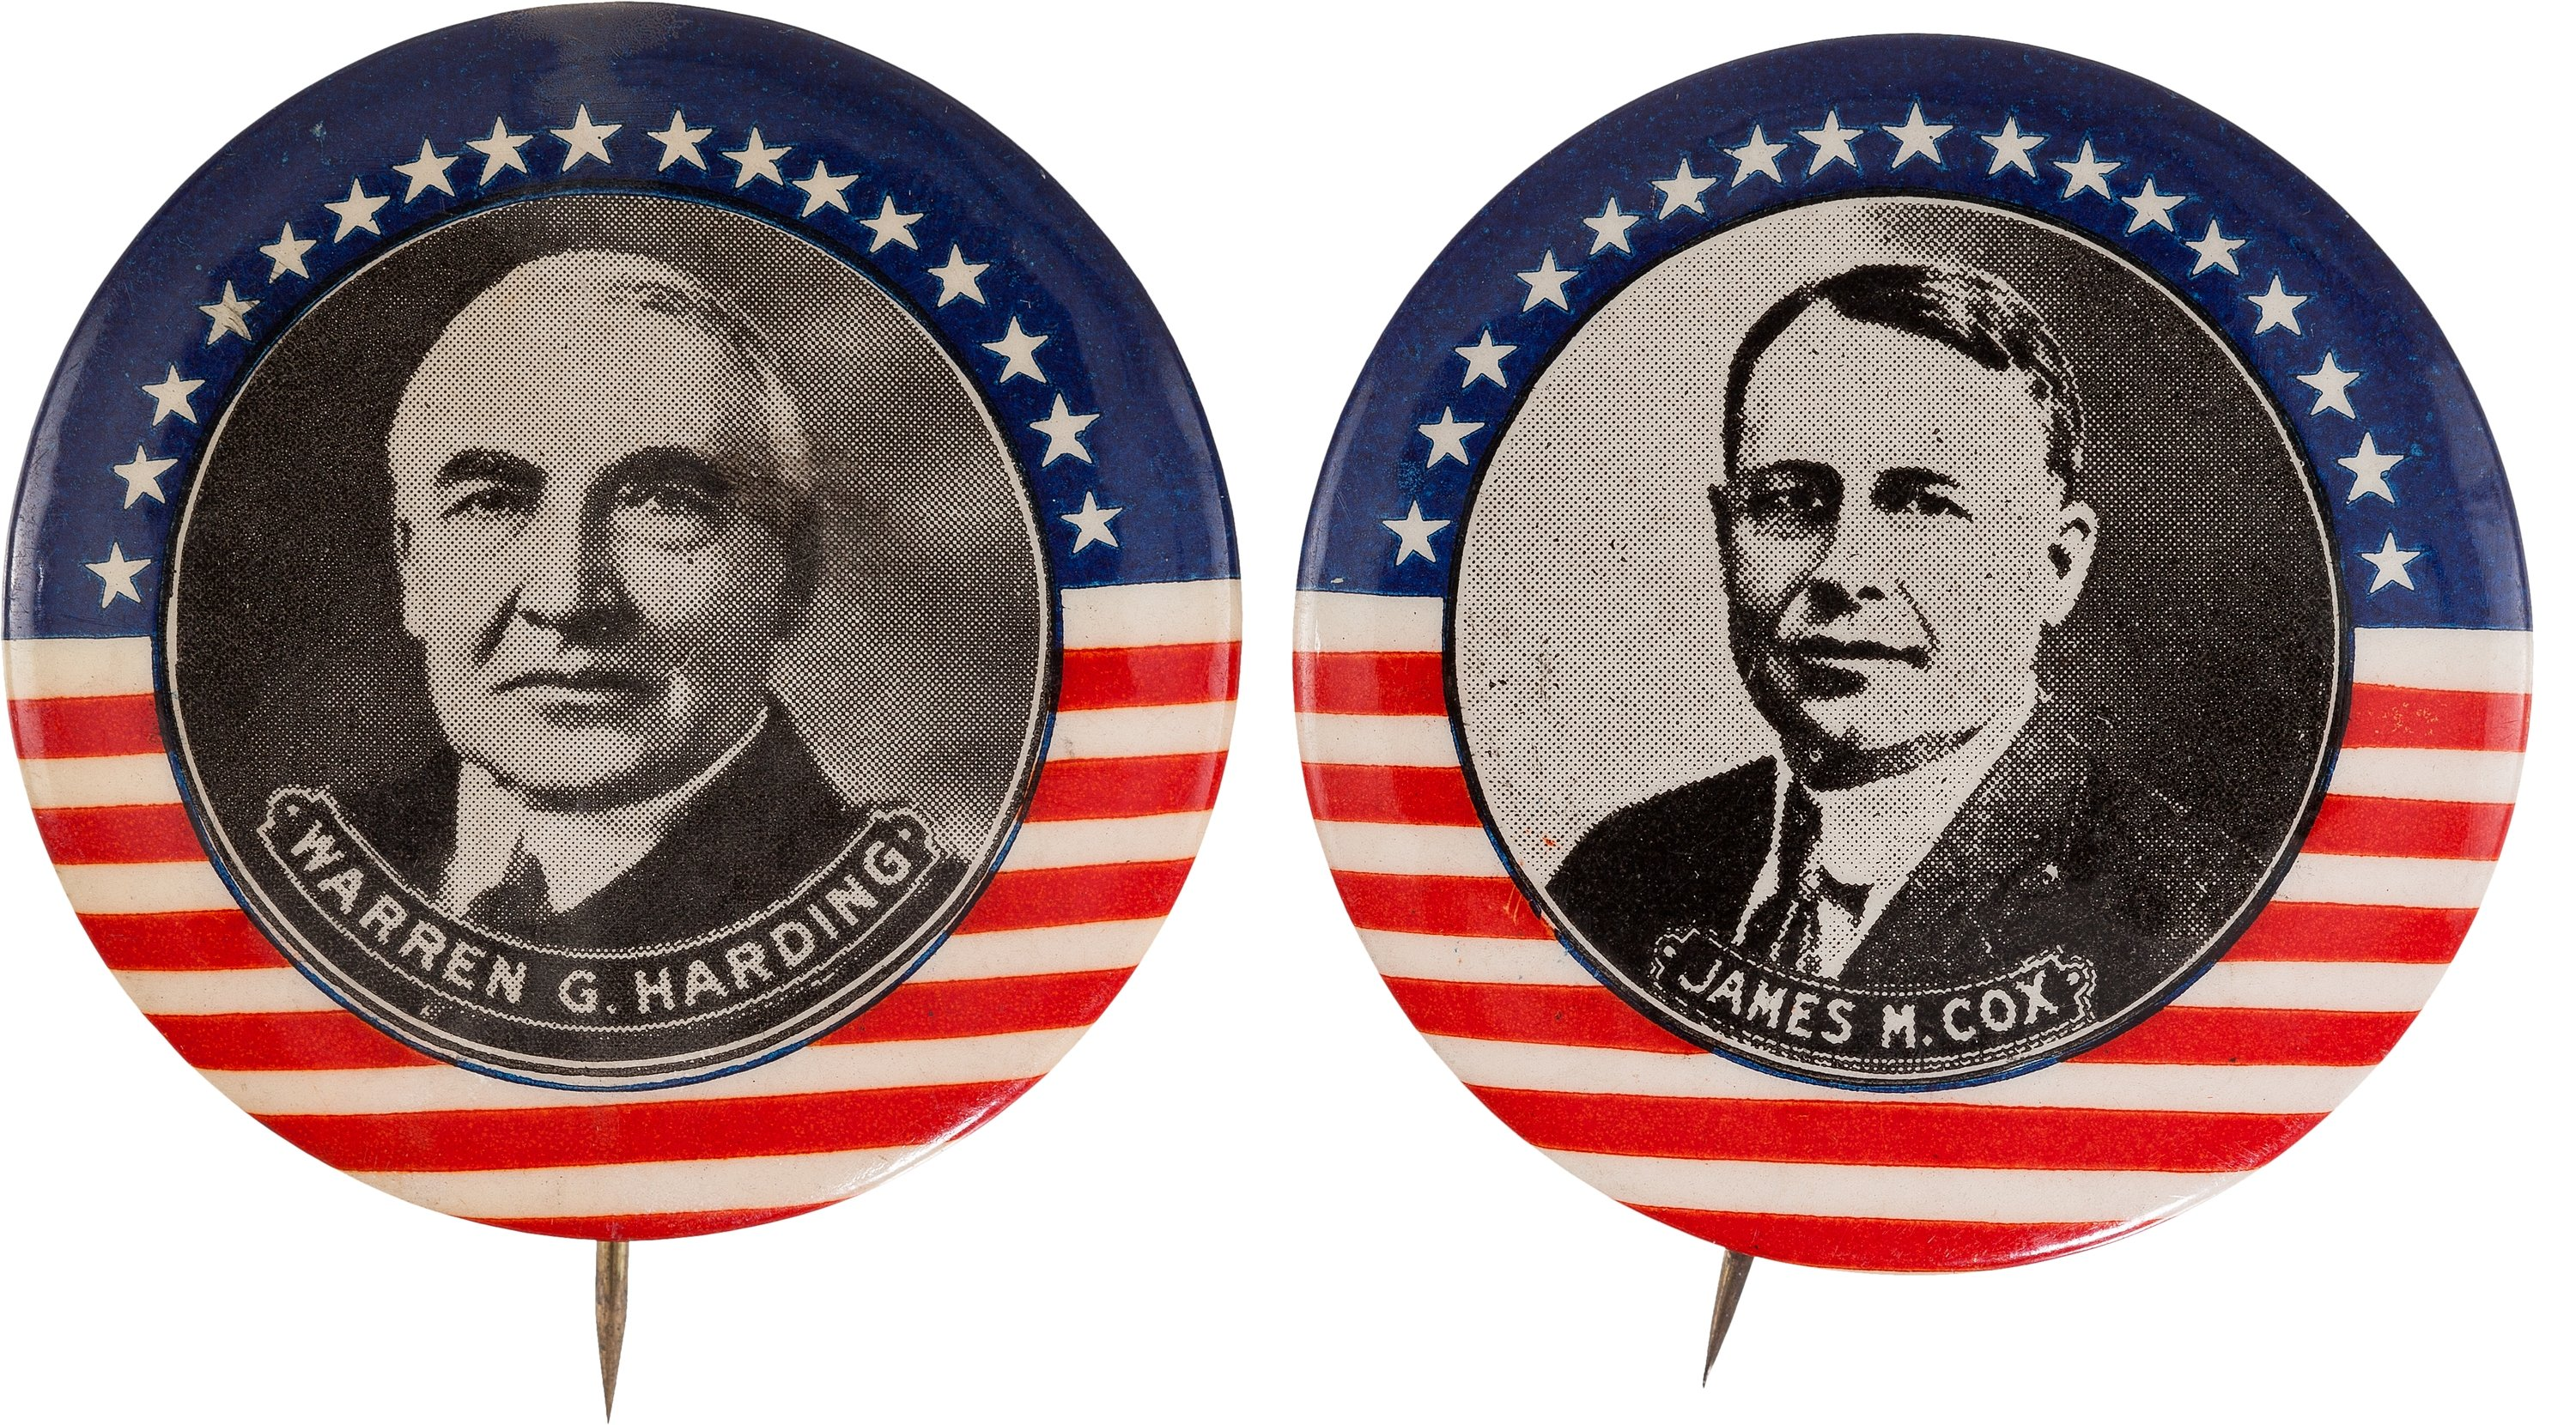 warren-g-harding-and-james-m-cox-absolutely-stunning-matched-pair-of-large-1920-rarities